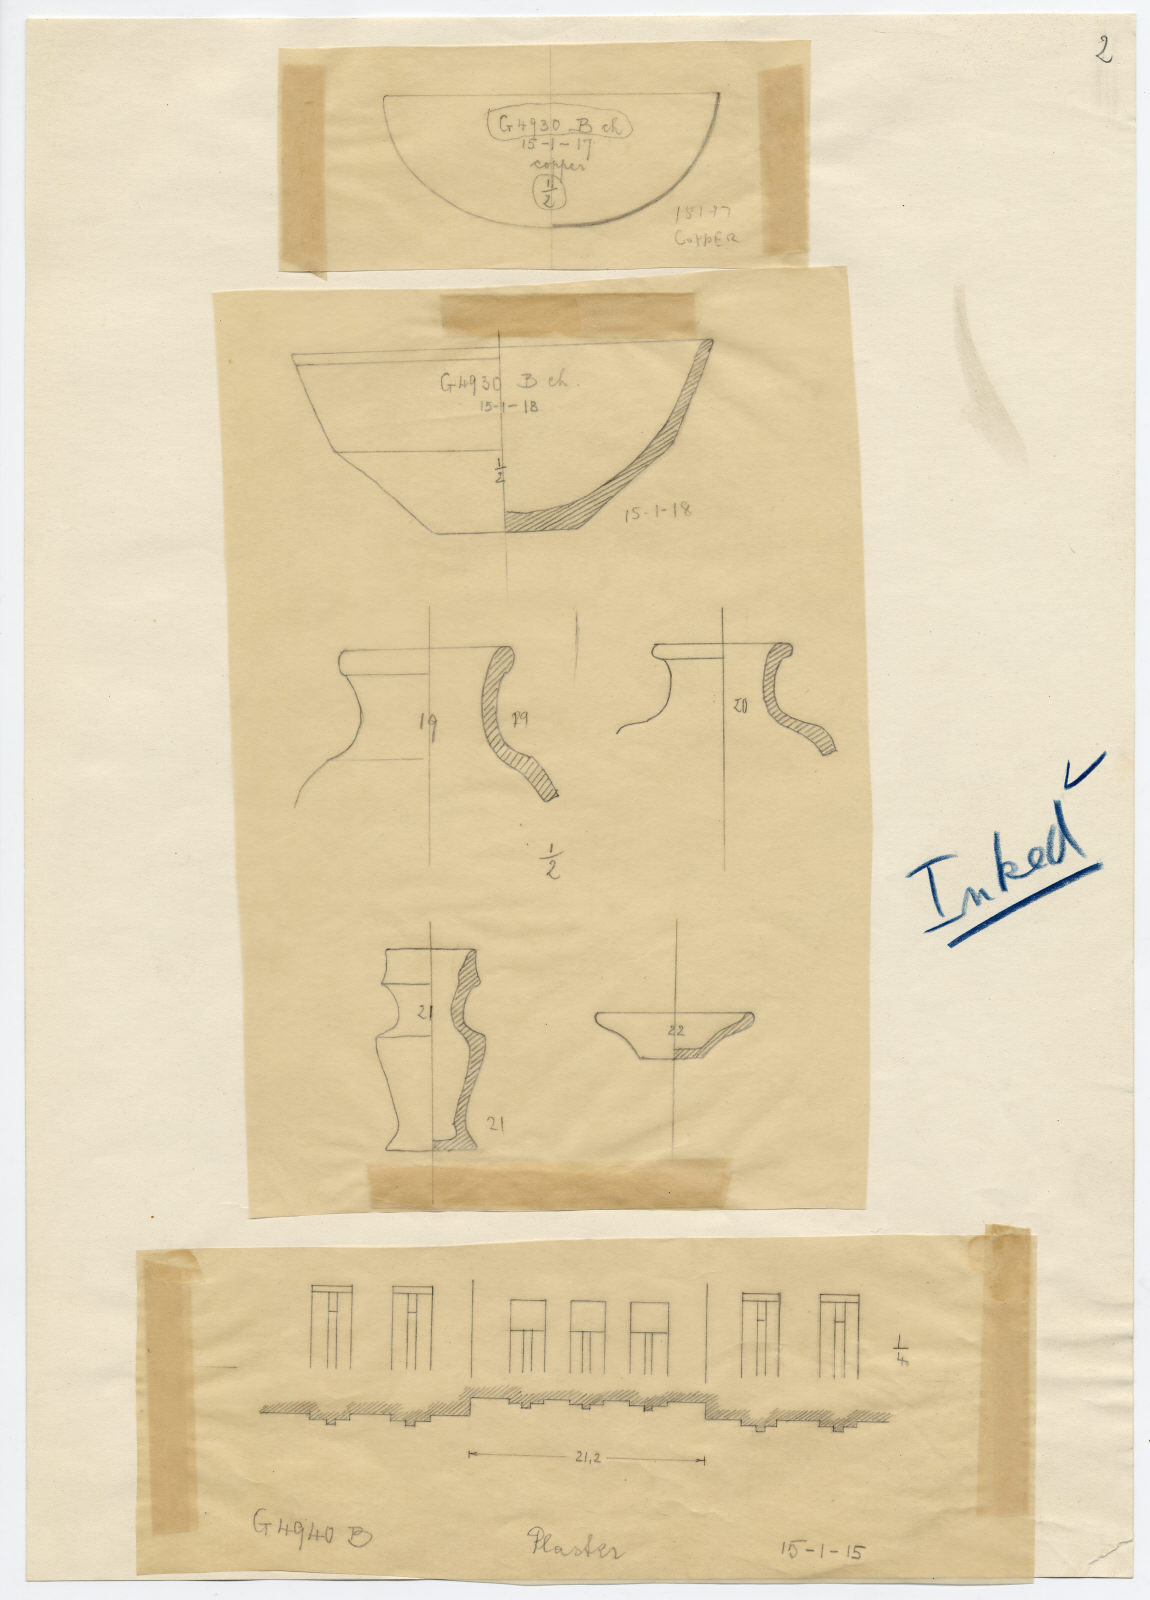 Drawings: Objects from G 4930 and G 4940